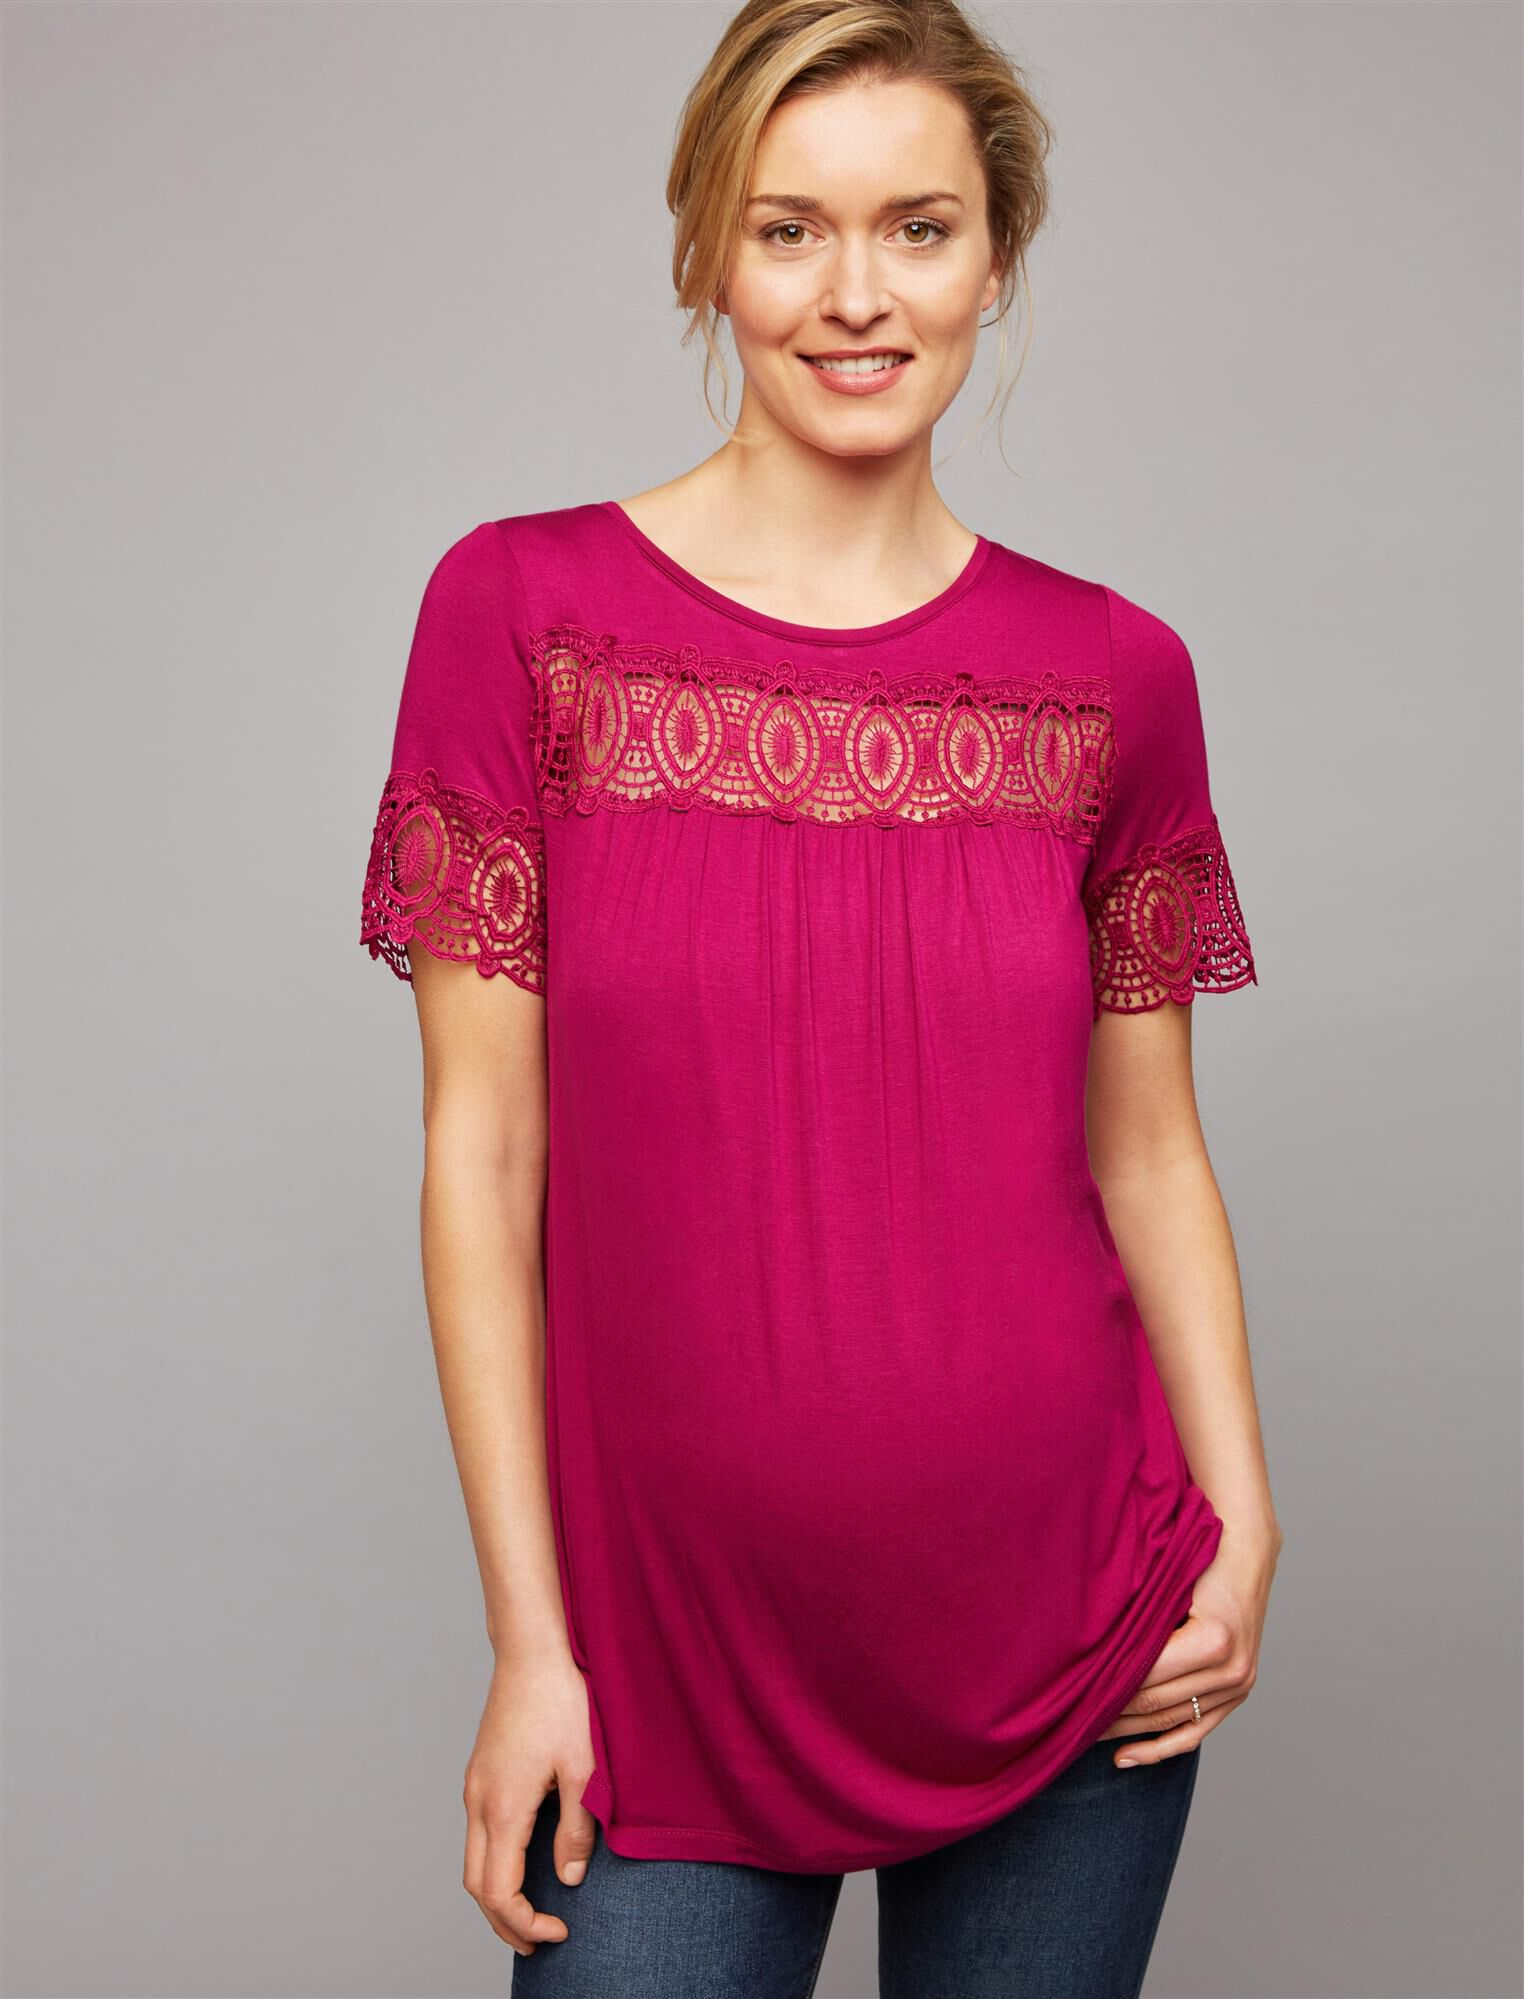 Embroidered Lace Trim Maternity Tee